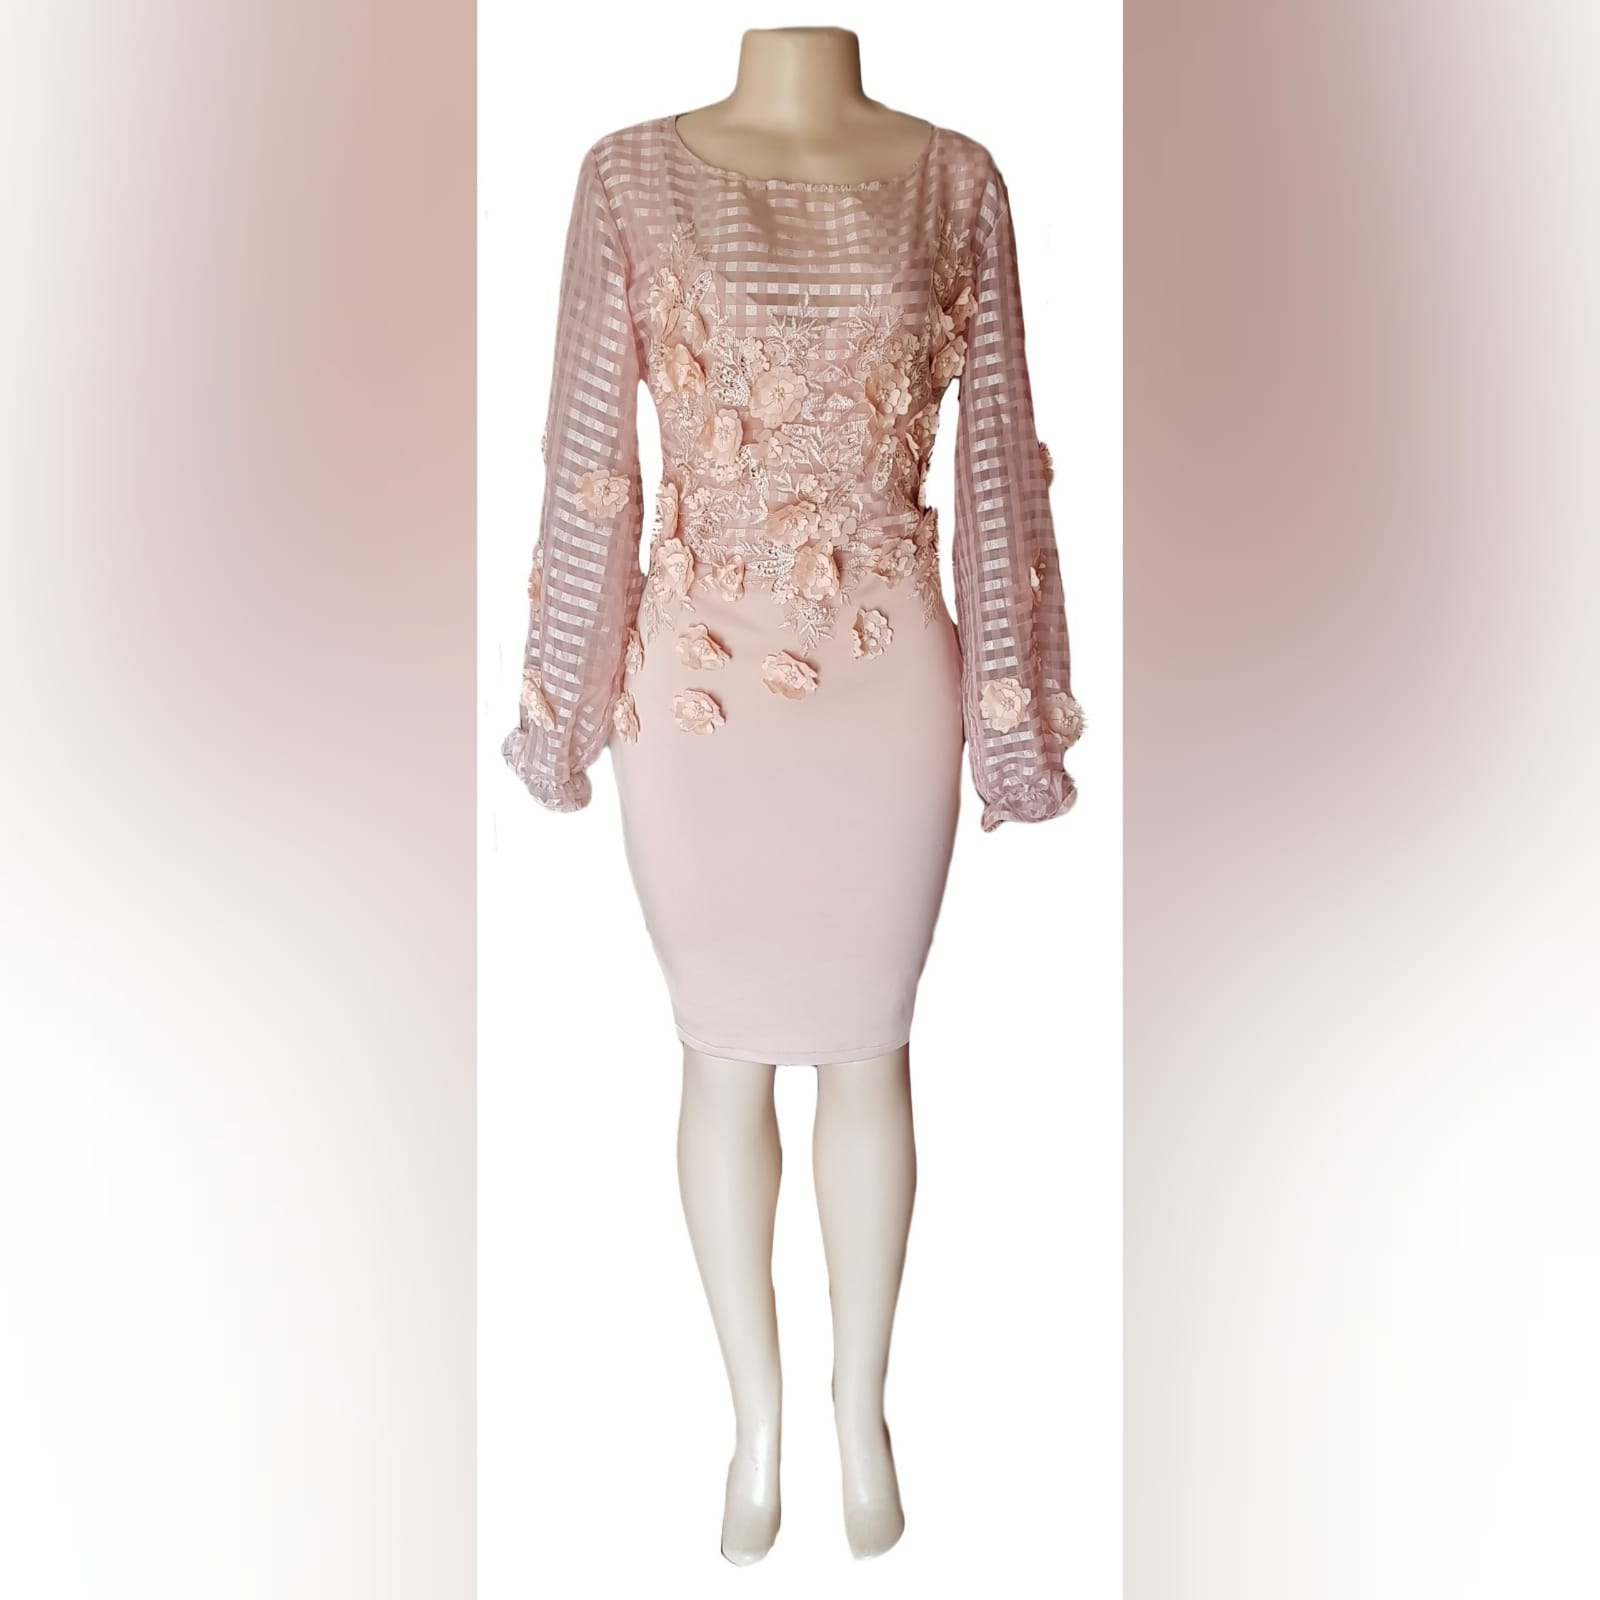 Pinky nude fitted knee length evening dress 3 pinky nude fitted knee length evening dress, bodice with striped sheer fabric, detailed with 3d lace & long bouncy sleeves.